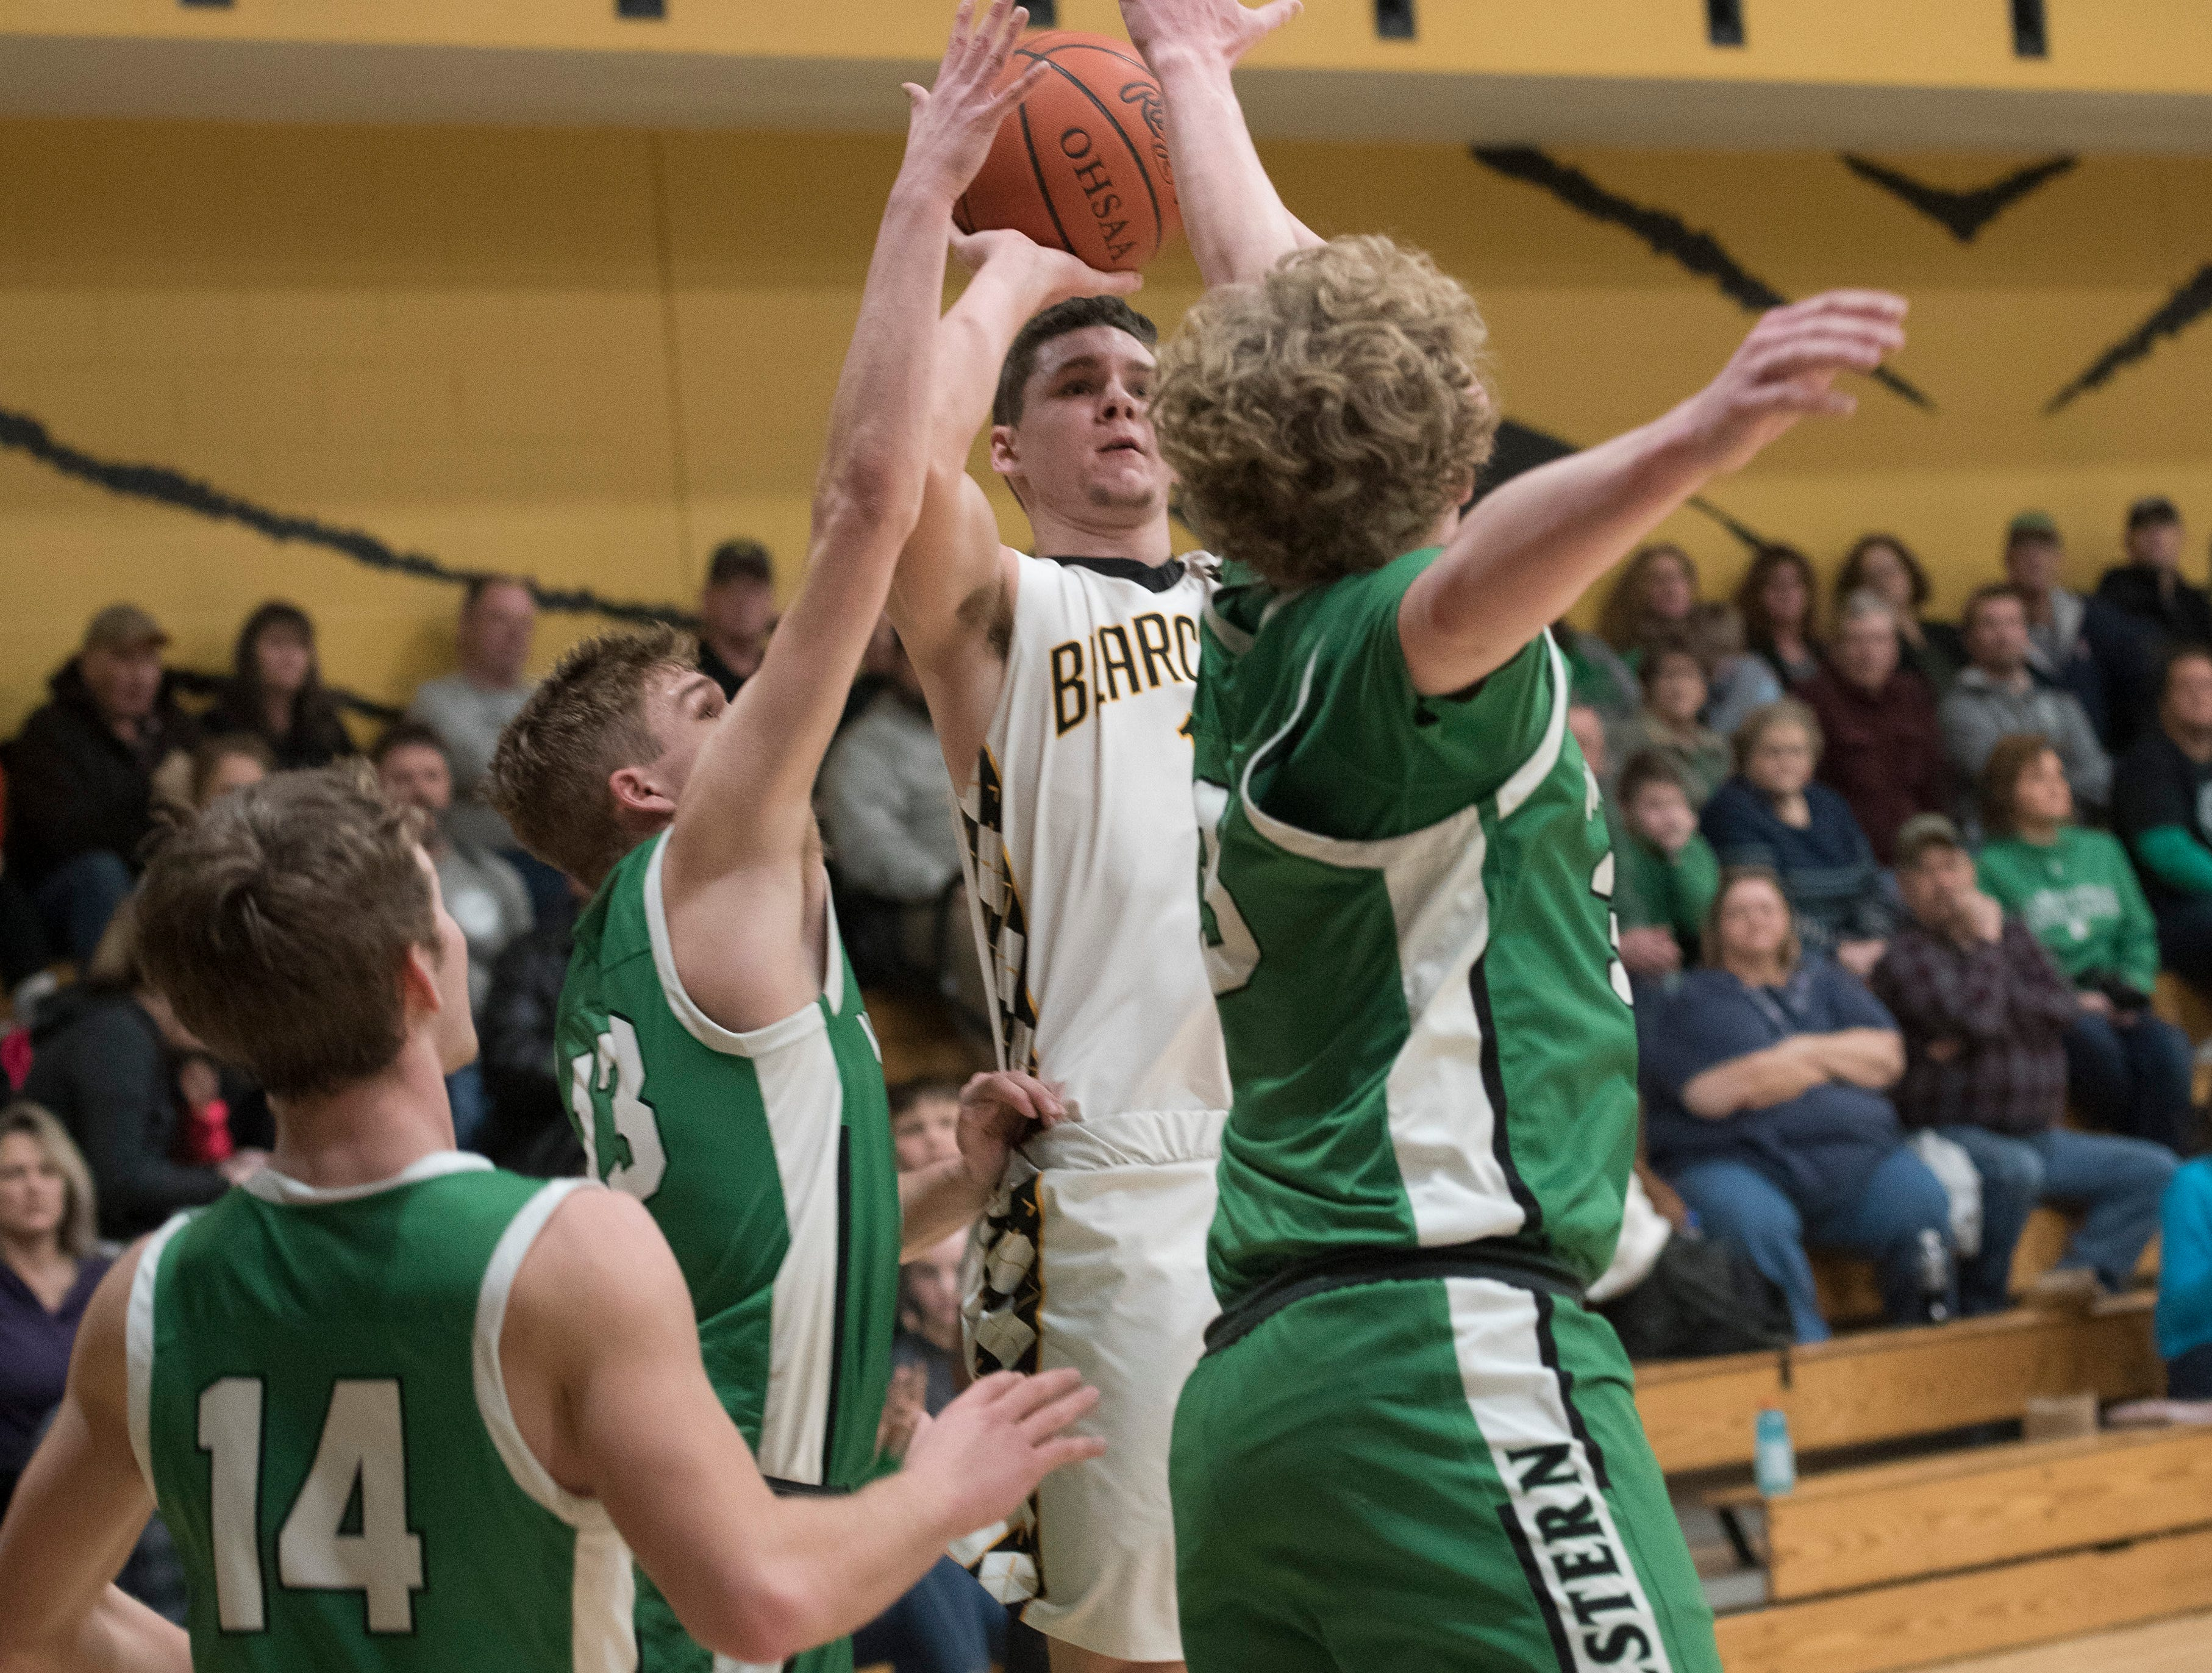 Paint Valley fell to Western 66-55 Tuesday night at Paint Valley High School.